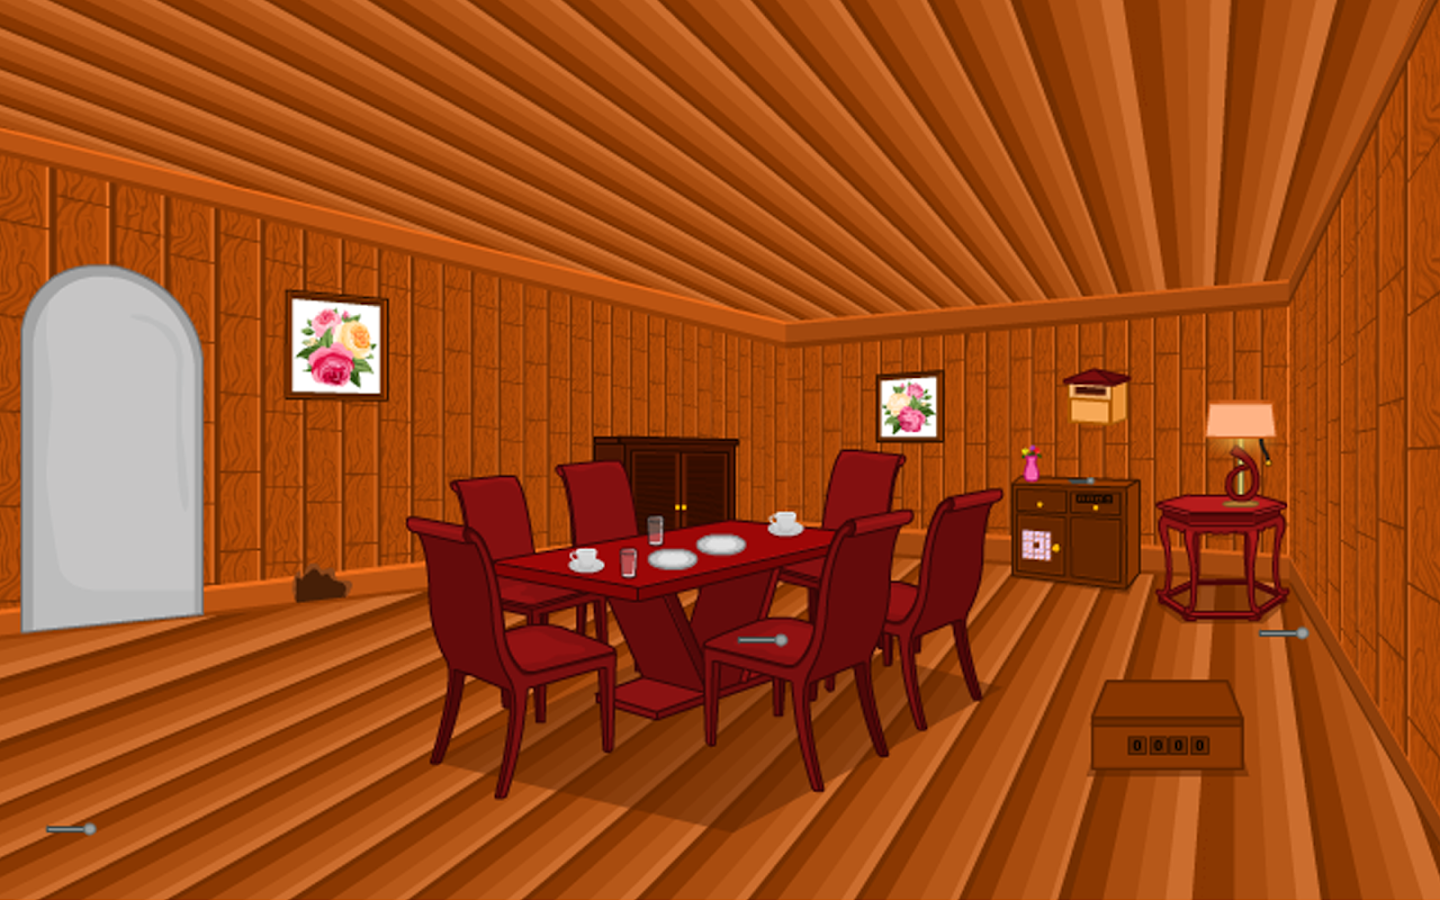 Escape Puzzle Dining Room Android Apps on Google Play : Civd2VWK4k95TOtTkUmGZAJkkGzwWv 4Veyb06OhKBEy8cyRY5Gd 1xLMjVnUftZ s8h900 from play.google.com size 1440 x 900 png 1040kB